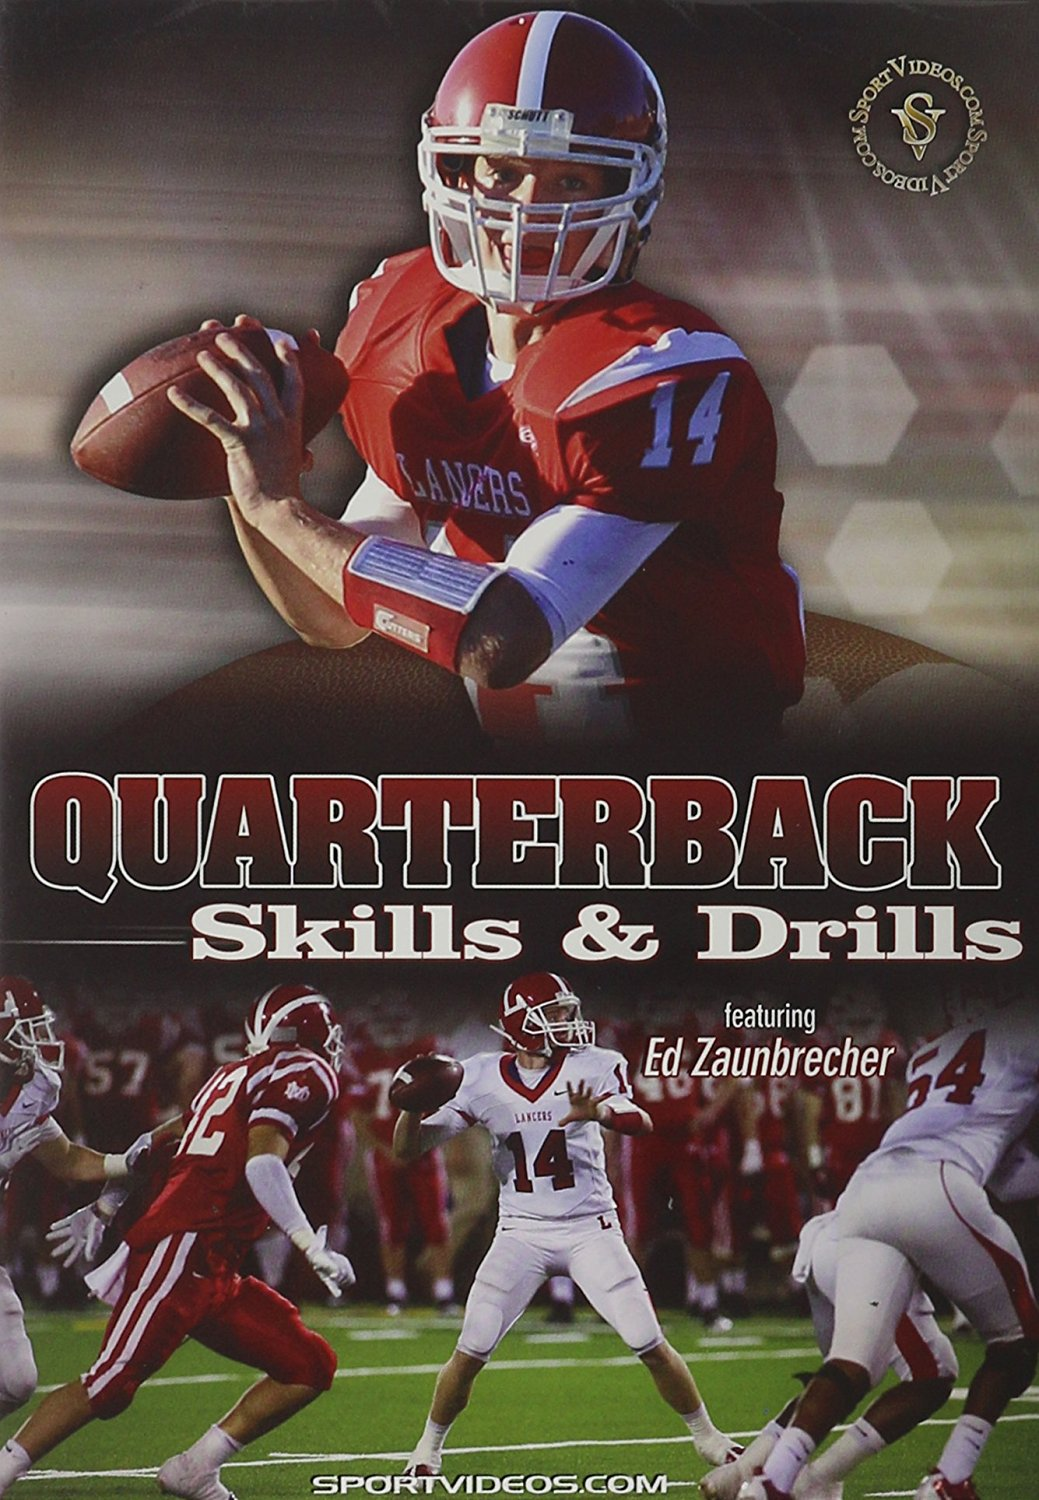 Quarterback Skills and Drills DVD or Download - Free Shipping